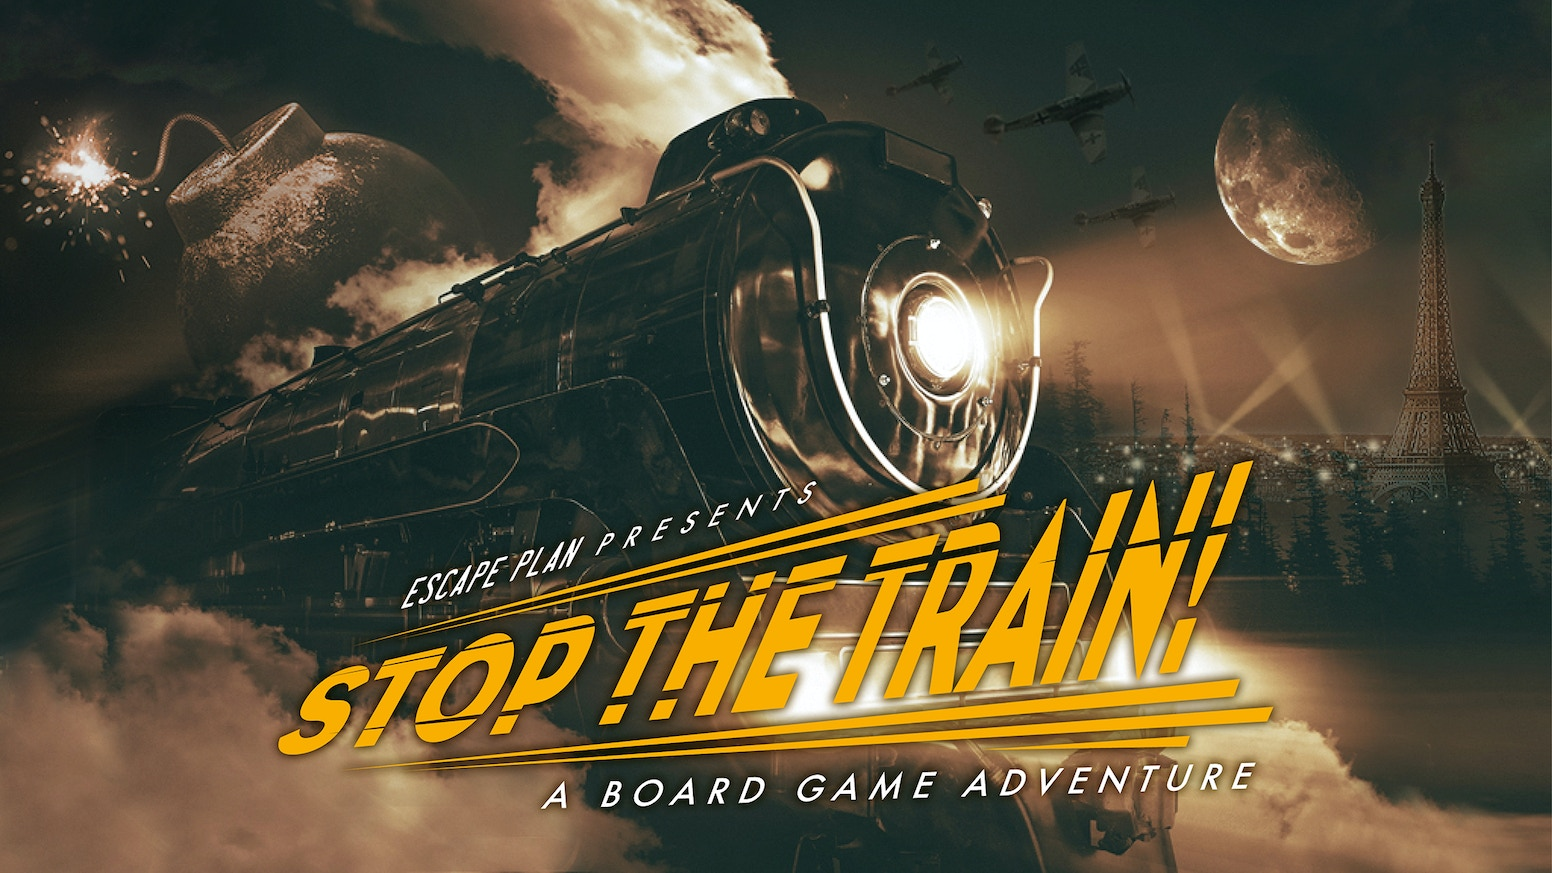 A thrilling board game adventure on a runaway train headed for Paris! Can you identify the Saboteur in your midst and avert disaster? Preorder from July 14th 2020